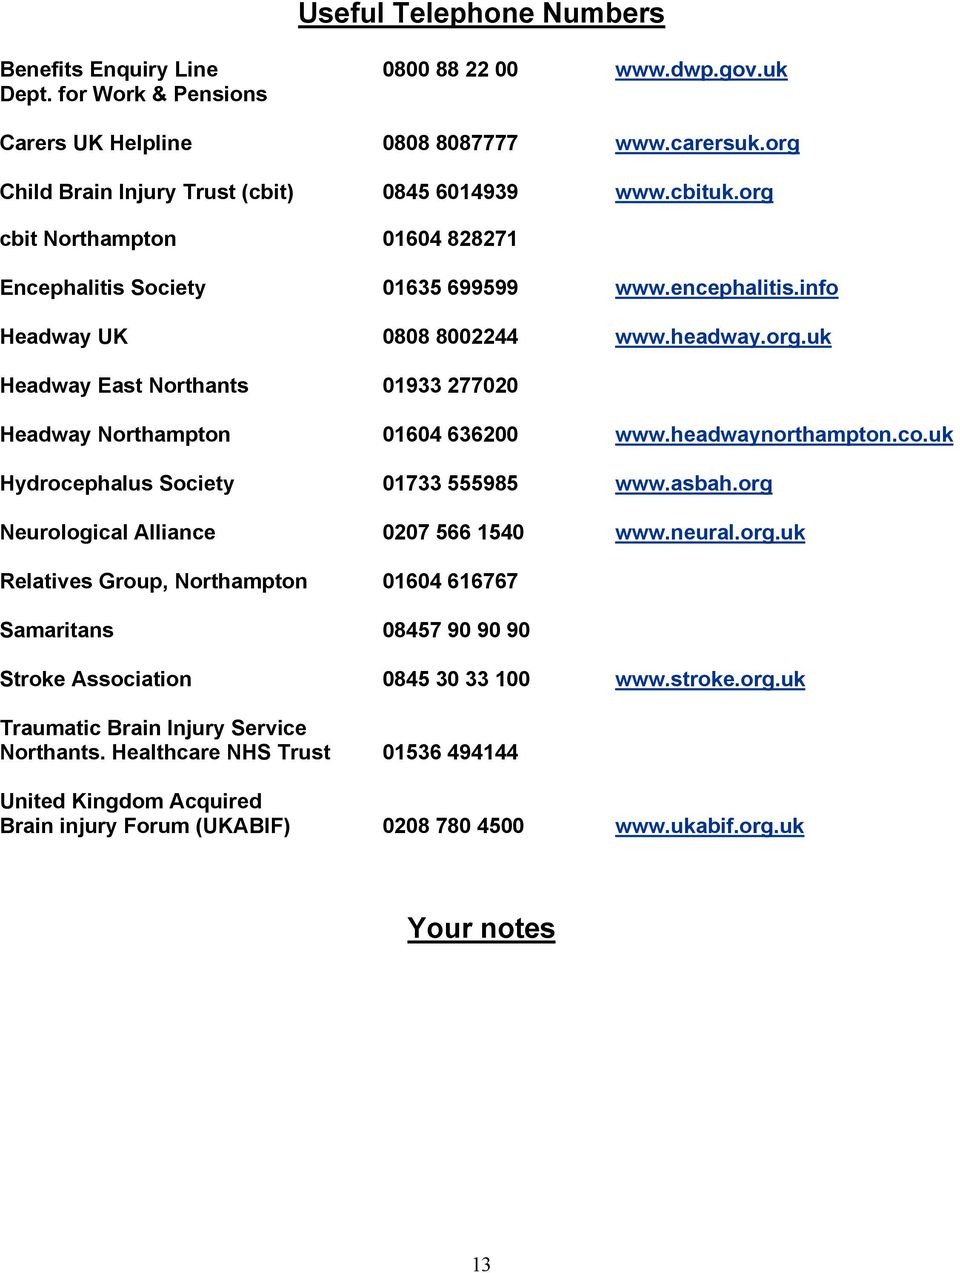 headwaynorthampton.co.uk Hydrocephalus Society 01733 555985 www.asbah.org Neurological Alliance 0207 566 1540 www.neural.org.uk Relatives Group, Northampton 01604 616767 Samaritans 08457 90 90 90 Stroke Association 0845 30 33 100 www.